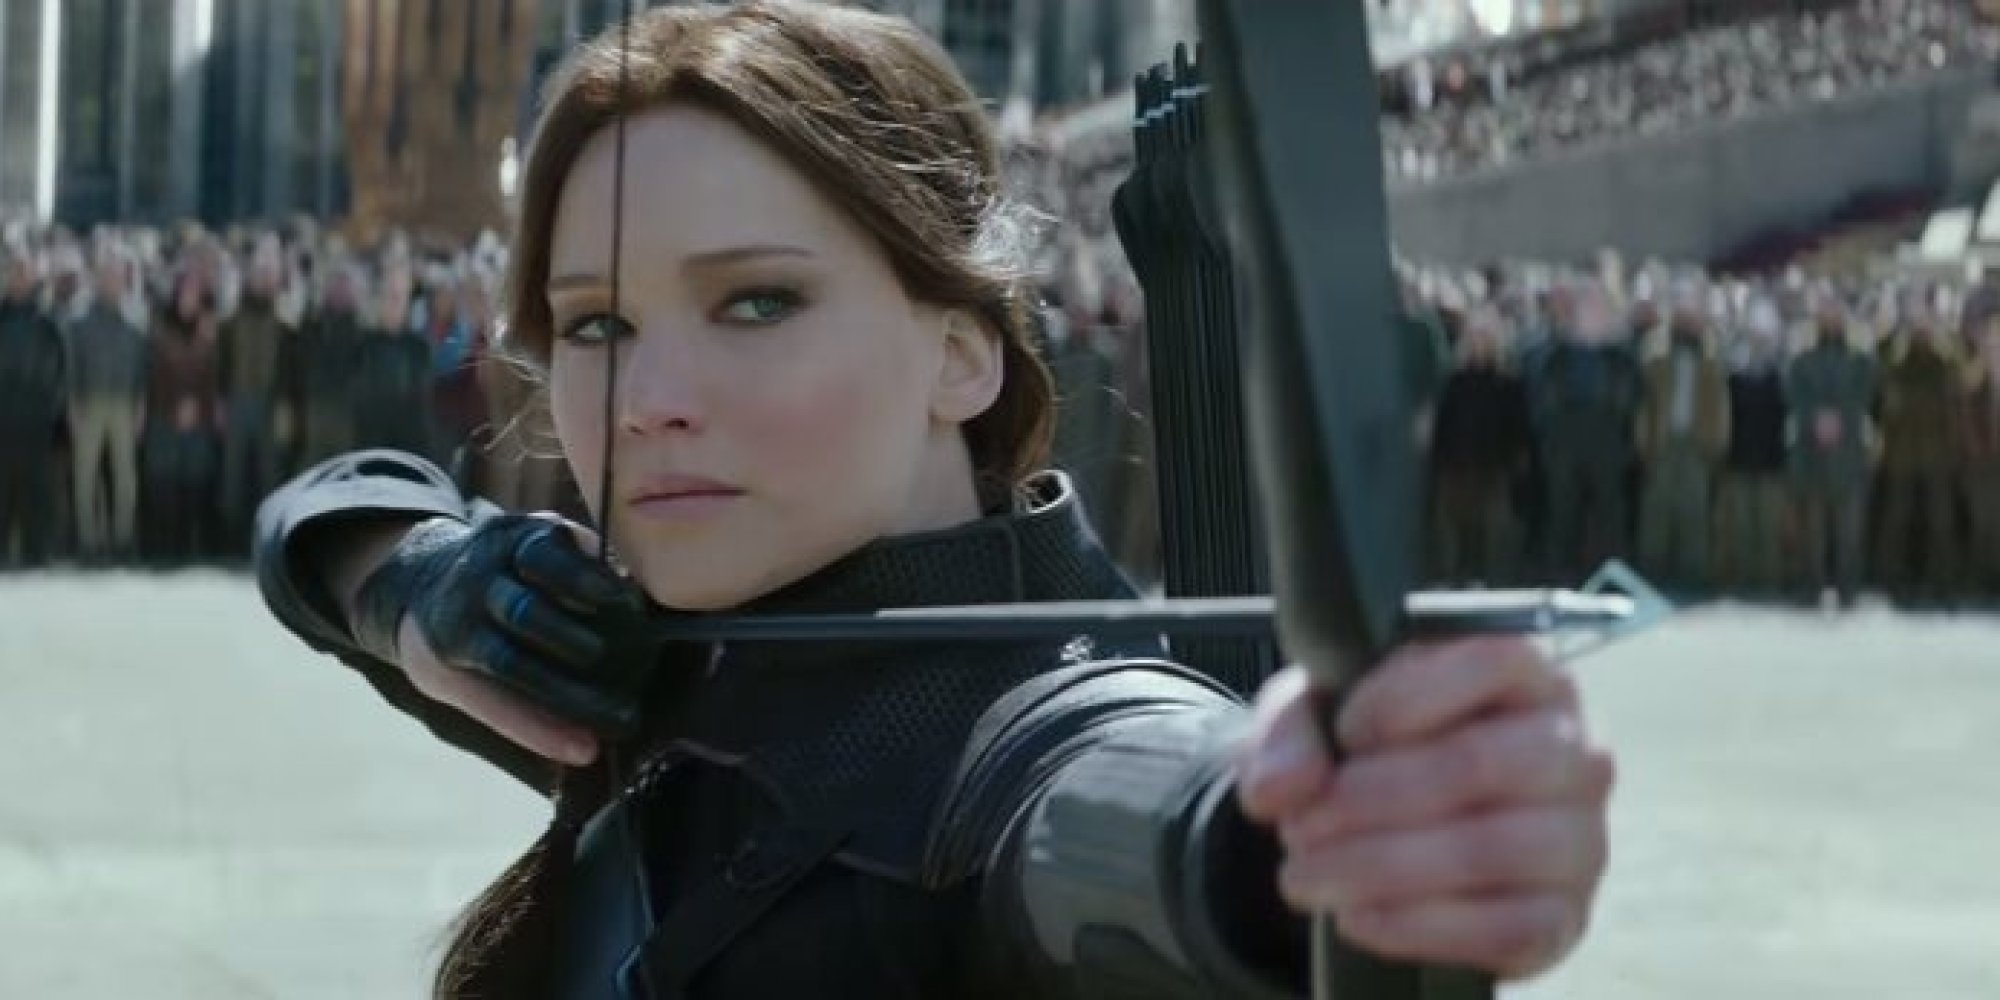 8-world-record-holding-celebs-5-lawrence-katniss-hunger-games